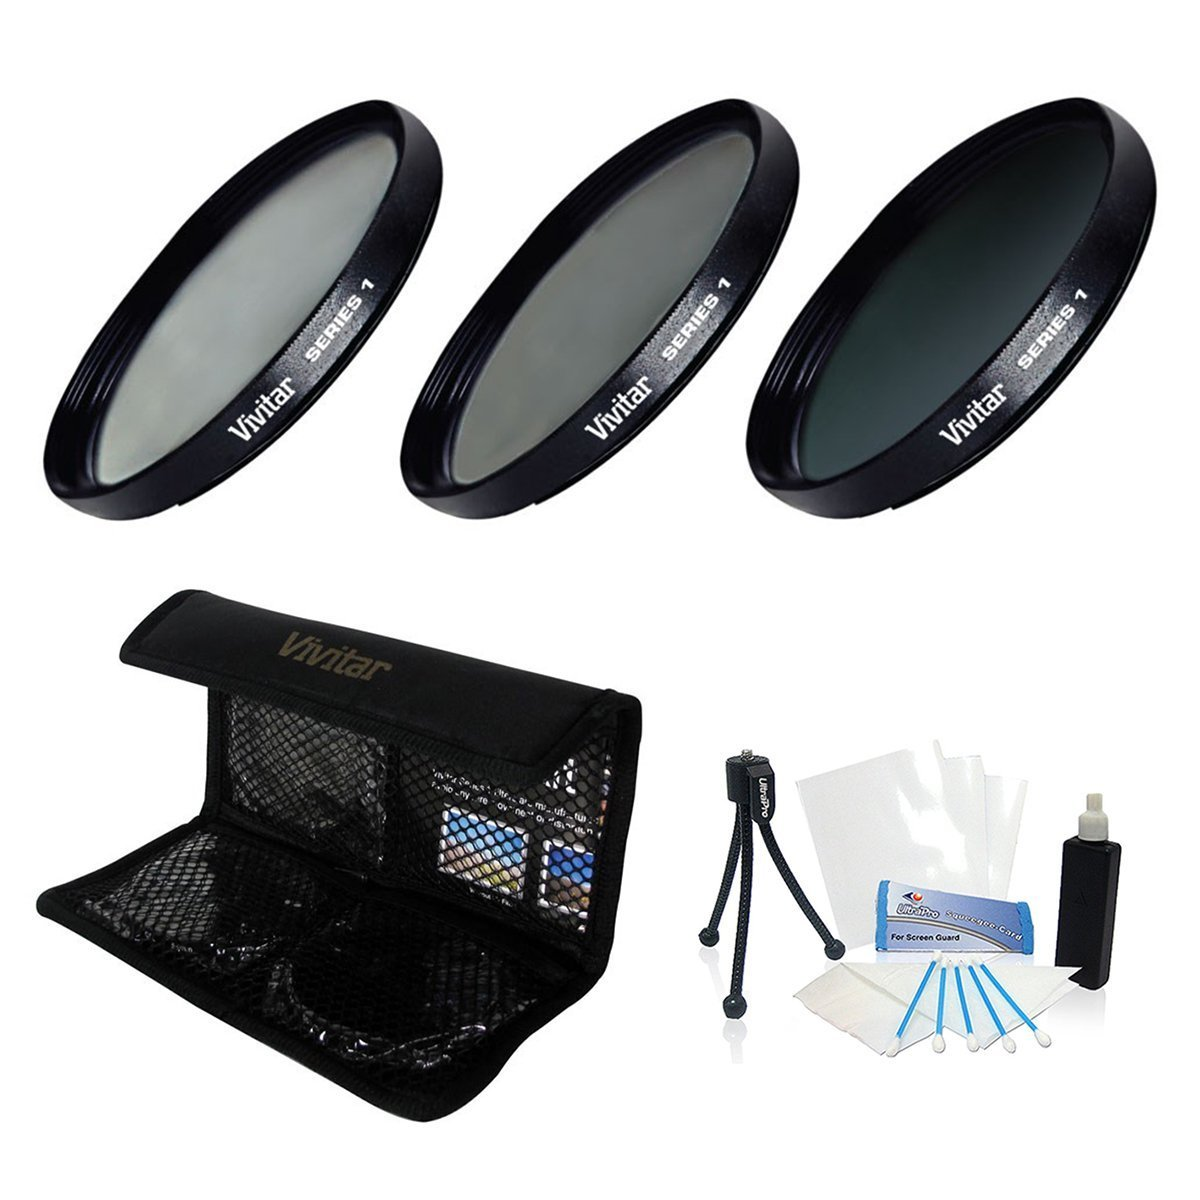 UltraPro 55mm Digital High-Resolution ND8 Filter Kit (UV, CPL, ND8) with Deluxe Filter Carry Case for the Sony FDR-AX53 4K Ultra HD Handycam Camcorder. UltraPro Deluxe Accessory Set Included